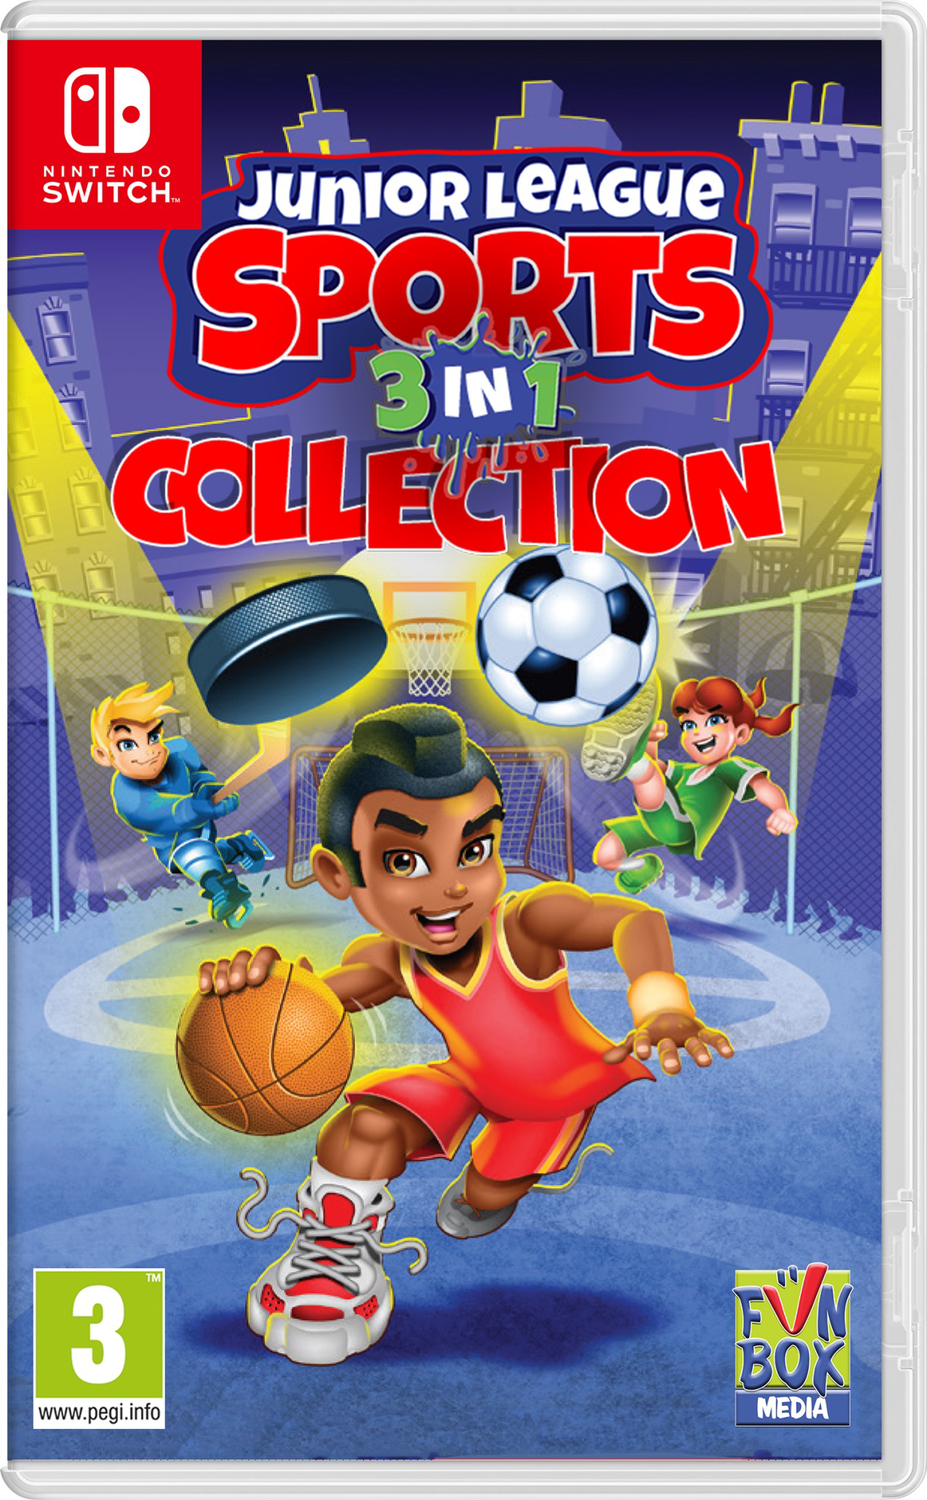 Junior League Sports 3-in-1 Collection (Nintendo Switch) Game